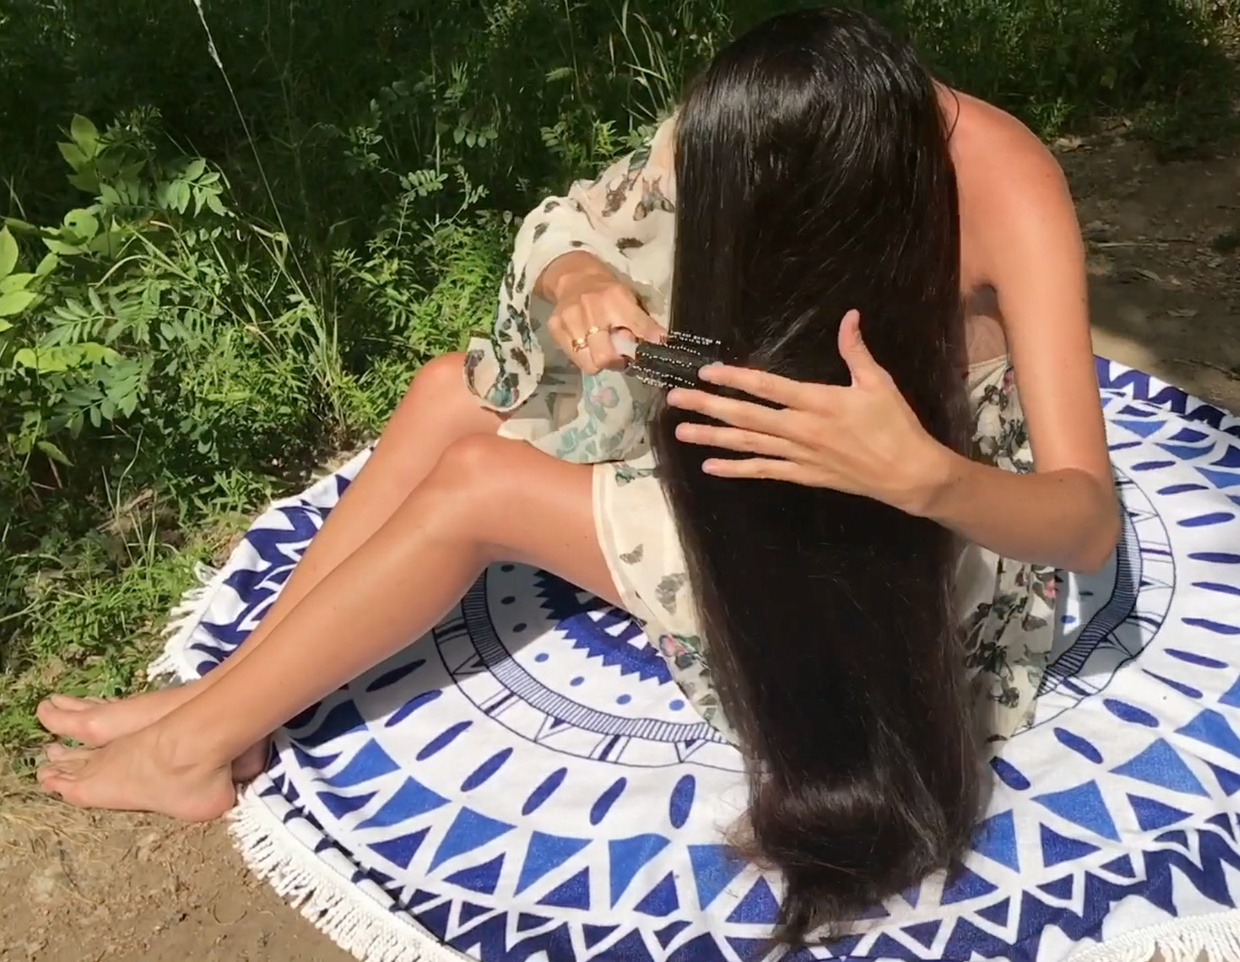 VIDEO - Long hair in the park